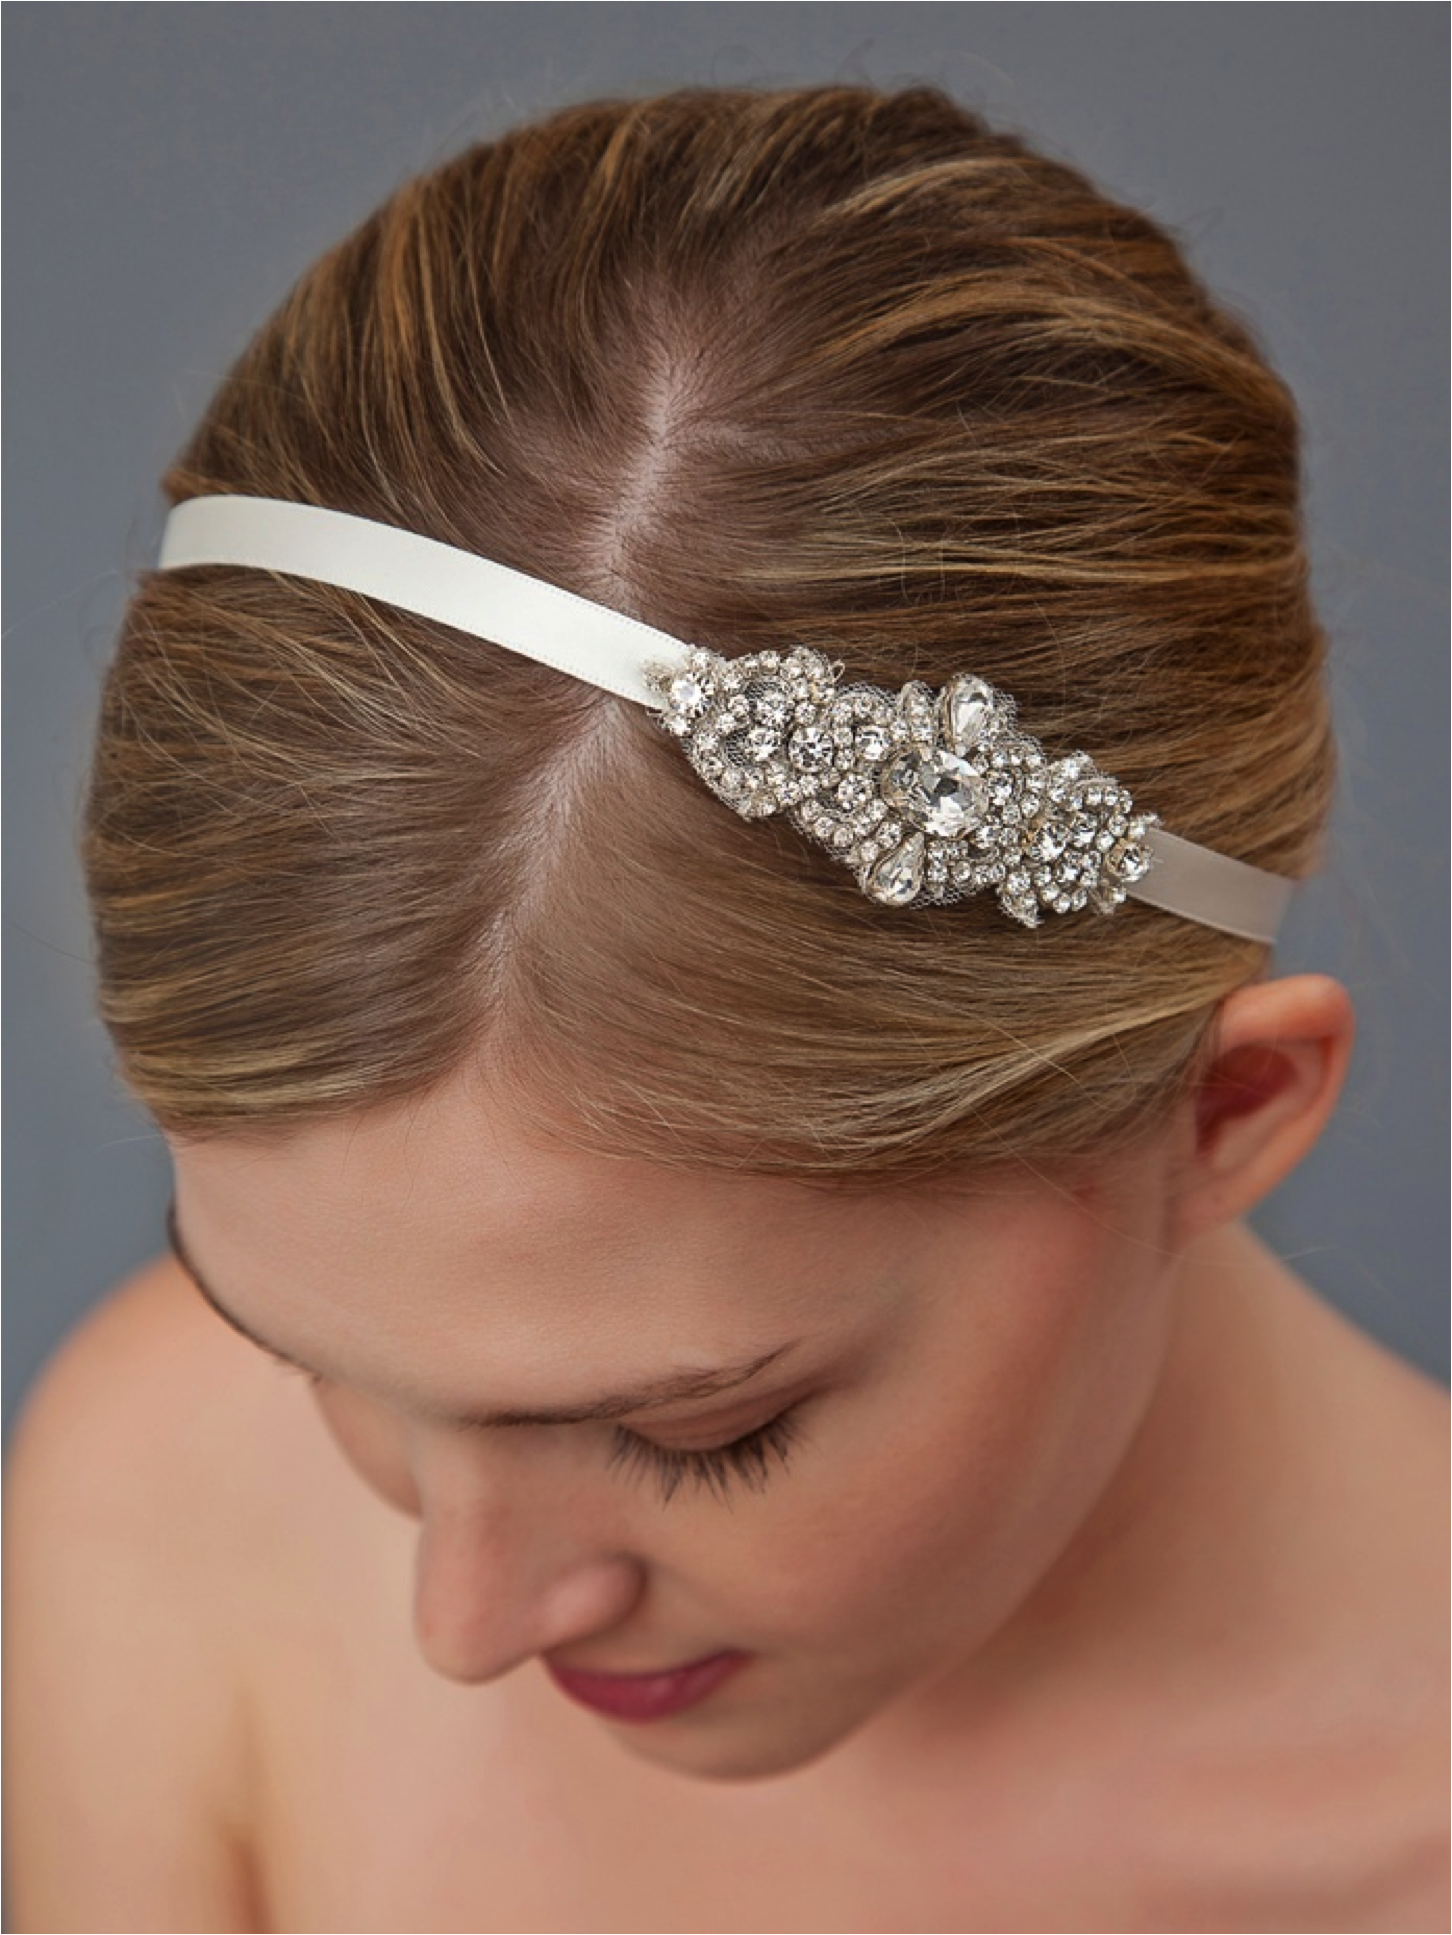 Chic bridal headband with crystal brooch for wedding updo | OneWed.com